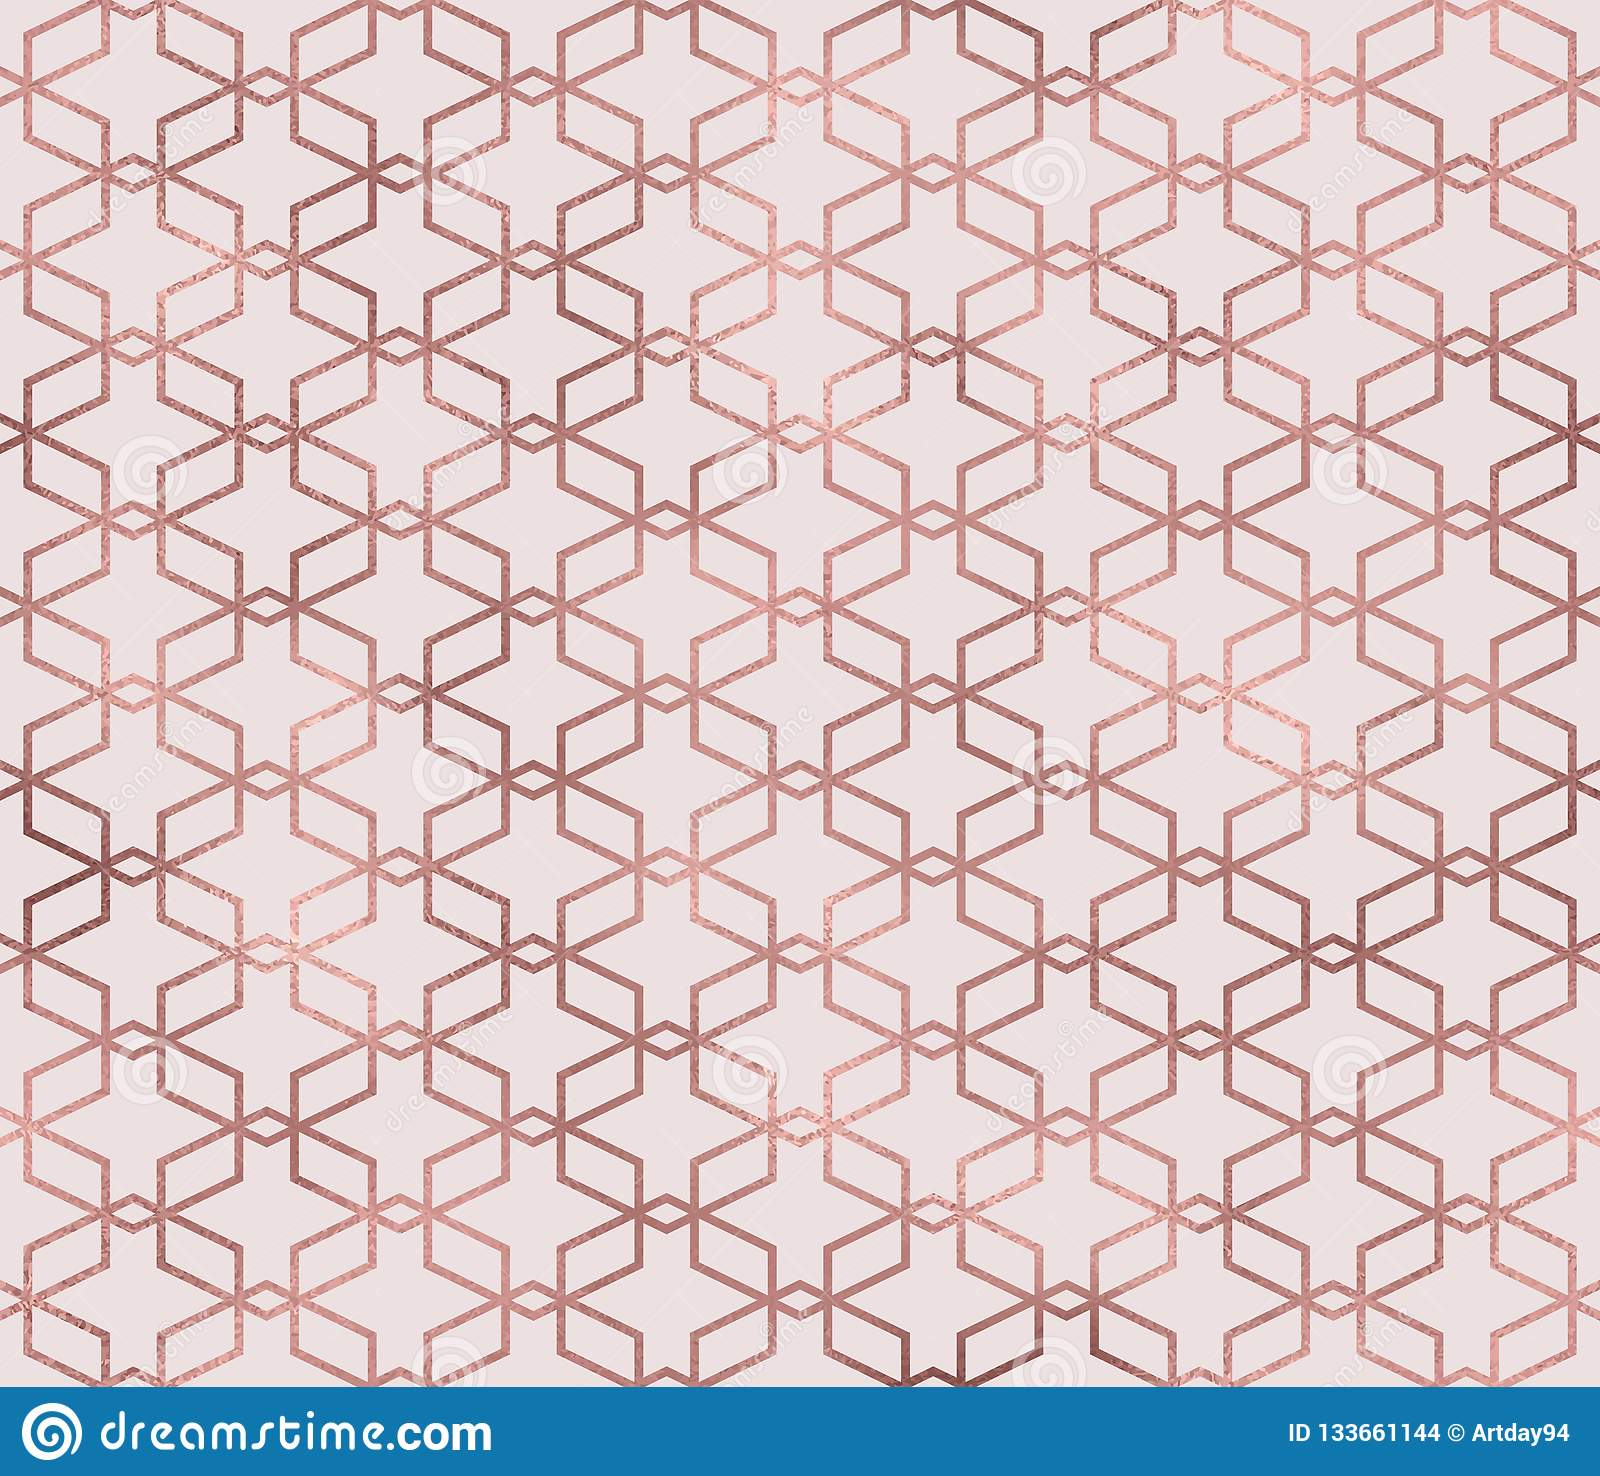 Chic Contemporary Modern Wallpaper Sparkle Geometric Seamless Pattern With Rose Gold Foil Texture